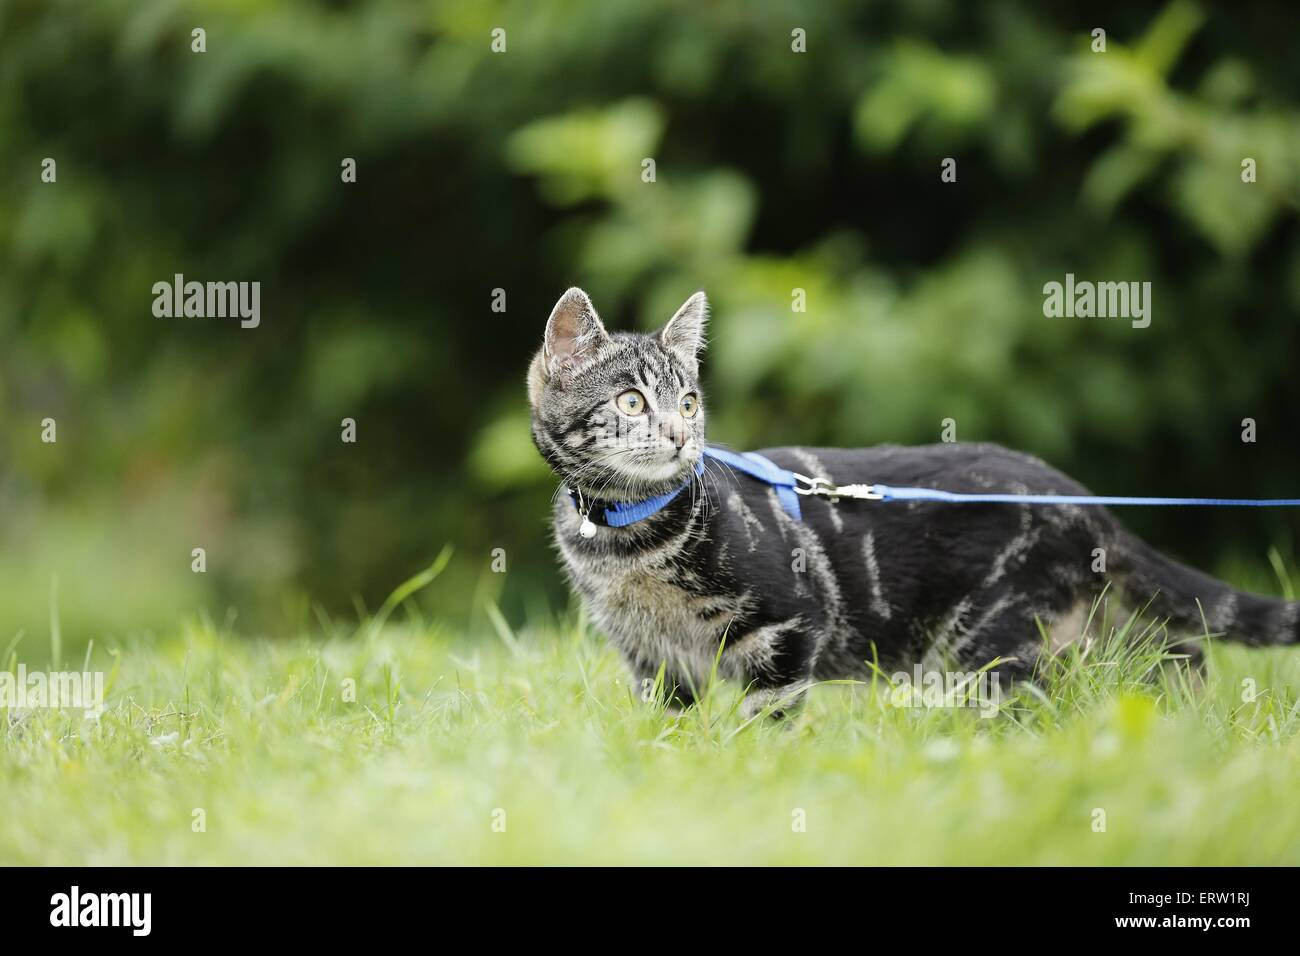 young cat - Stock Image